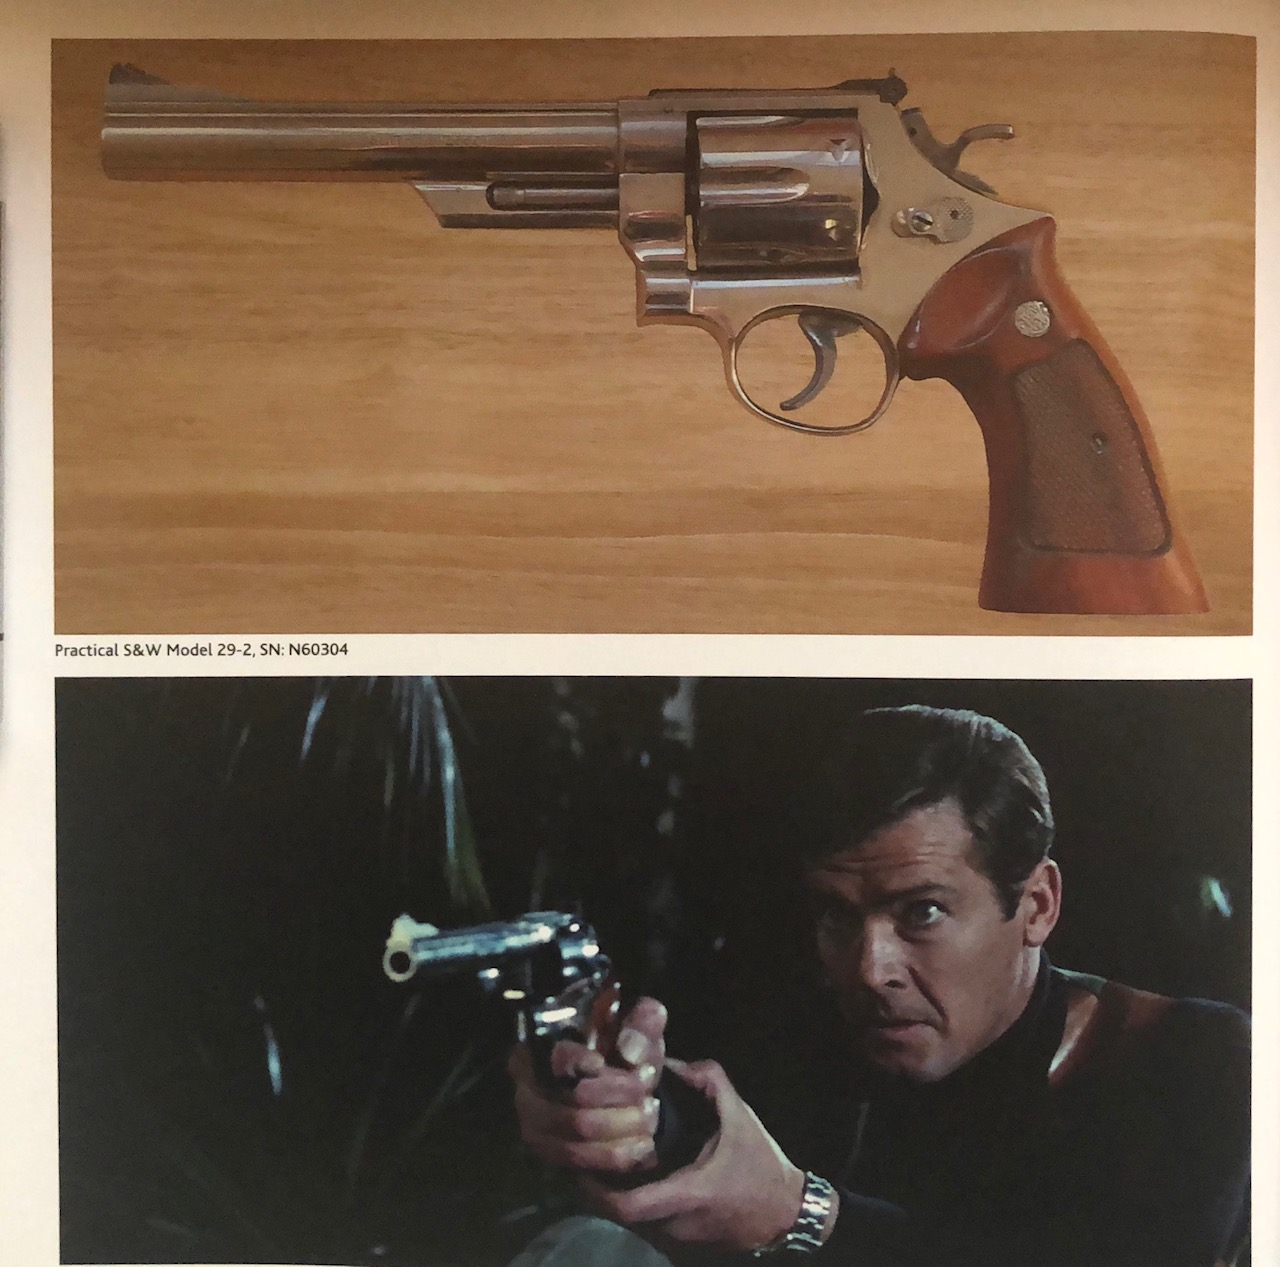 James Bond firearms burglary